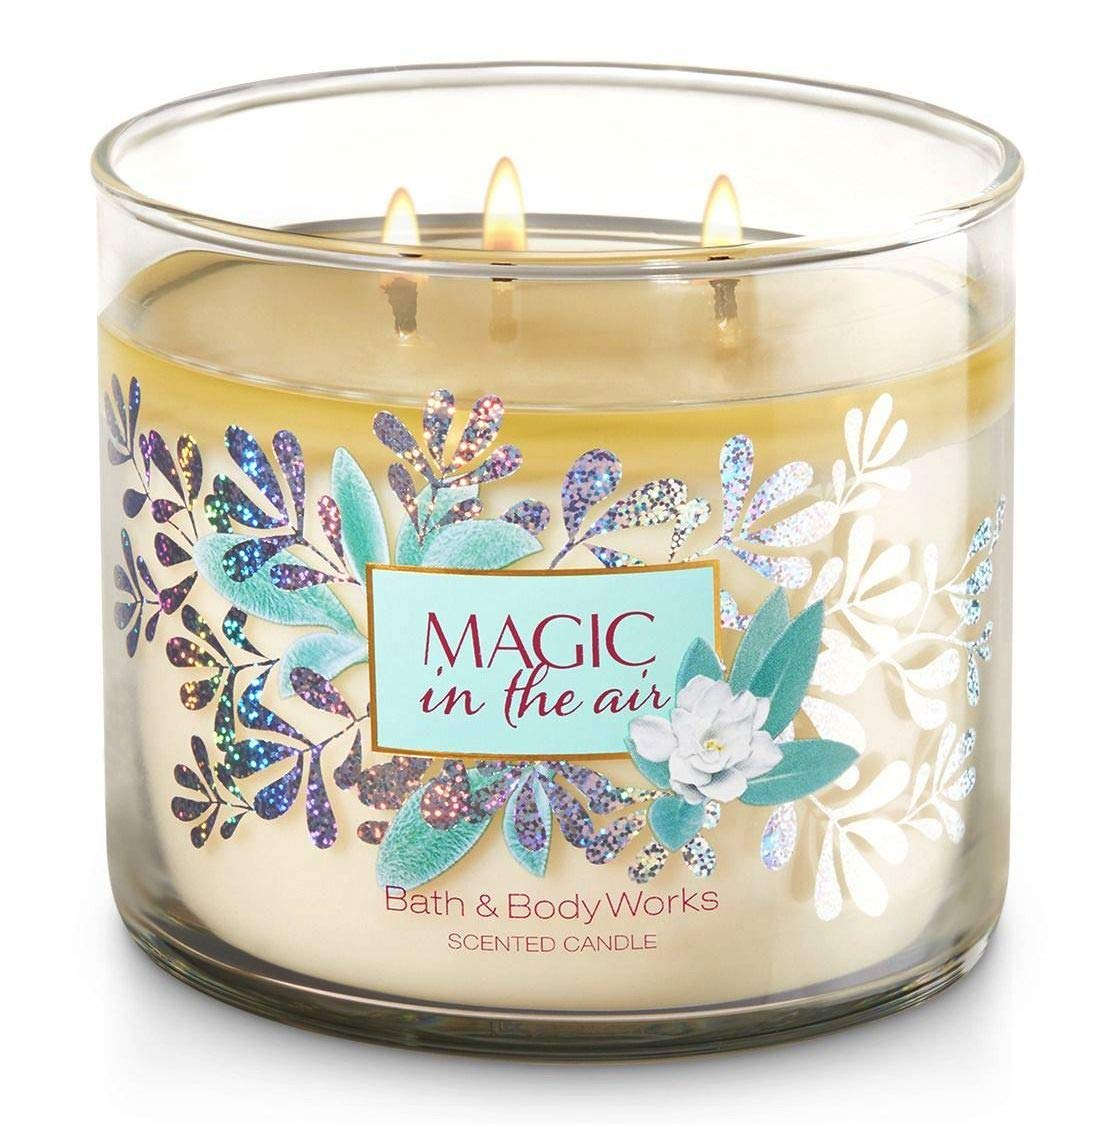 Bath and Body Works White Barn Magic In The Air 3 Wick Candle Jeweled Lid 14.5 Ounce